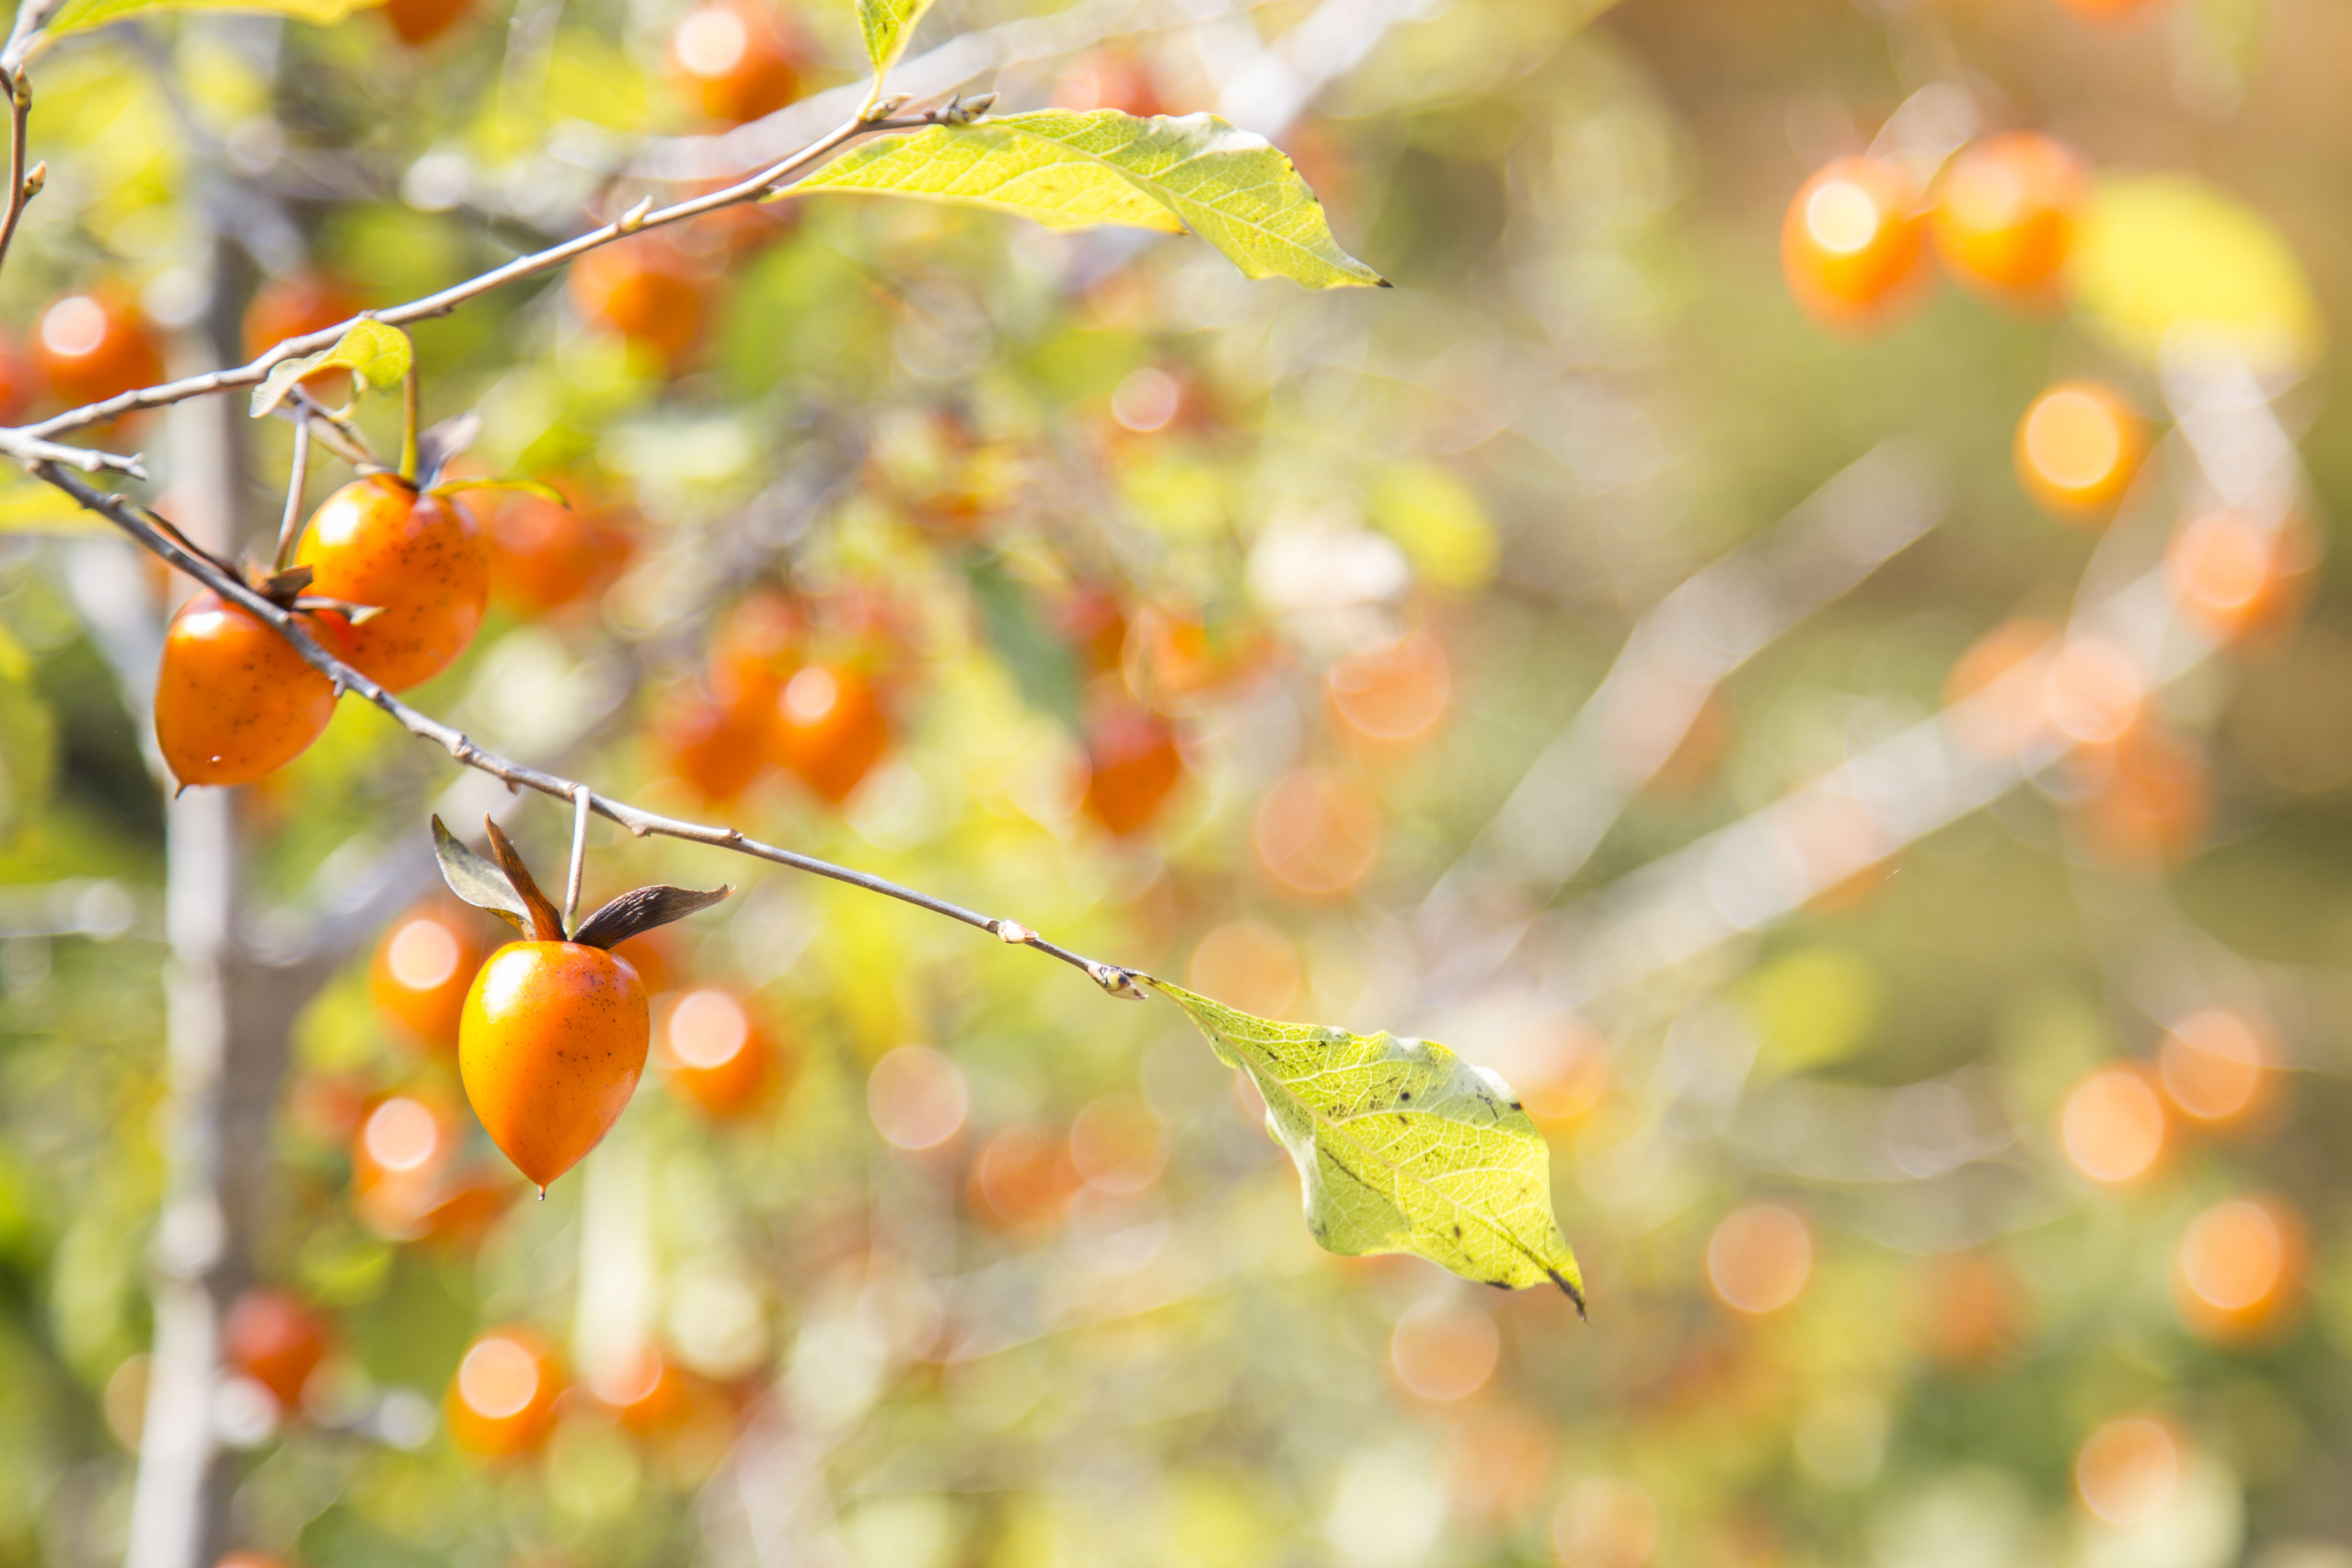 Persimmon Trees Have Sweet Fruit and Gorgeous Fall Foliage